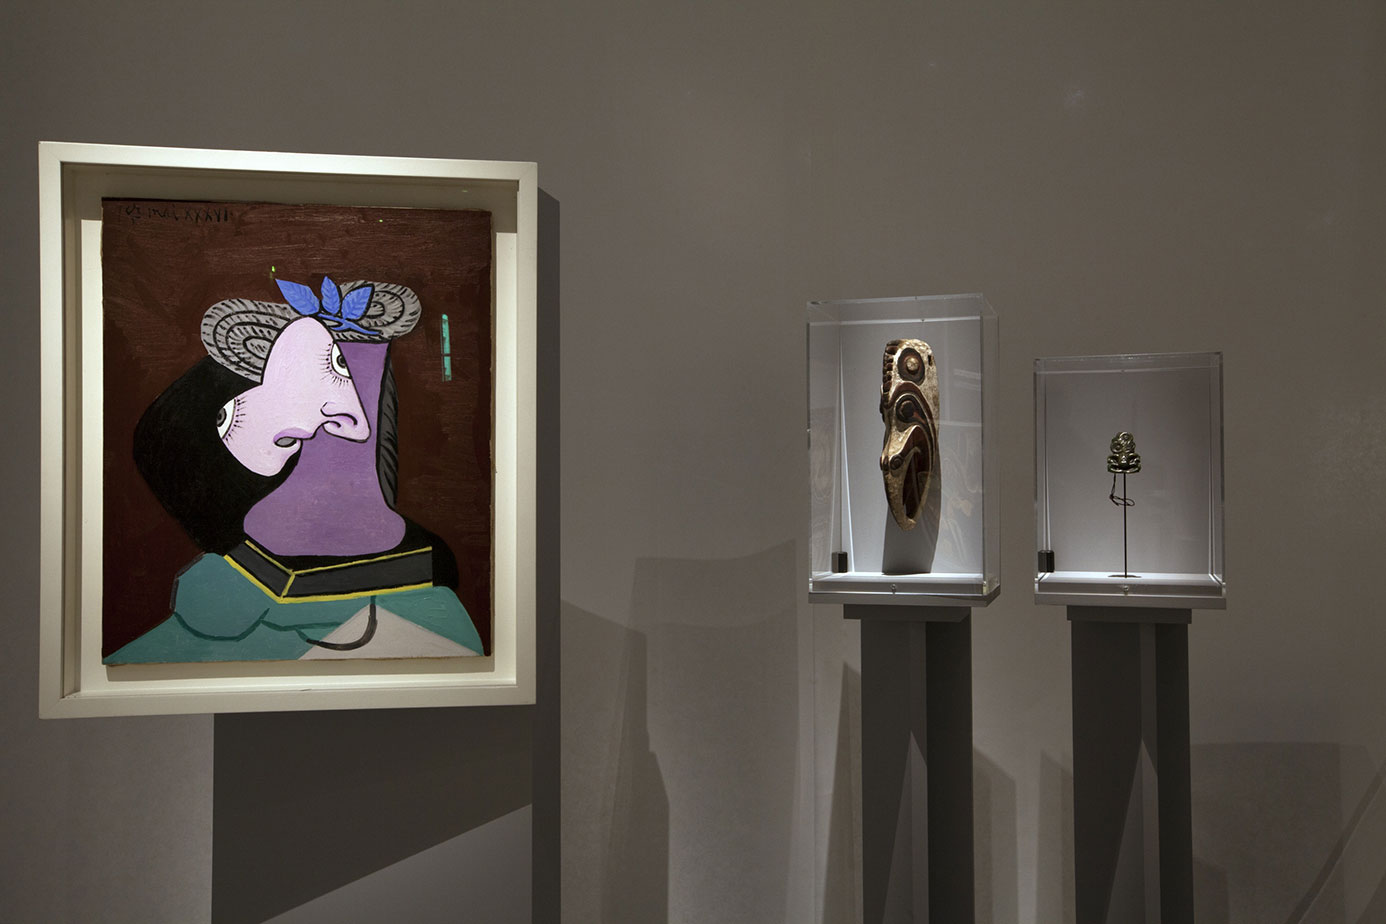 Primitive Picasso: in the intimacy of the Andalusian genius 2017 PLUMEVOYAGE @plumevoyagemagazine © DR